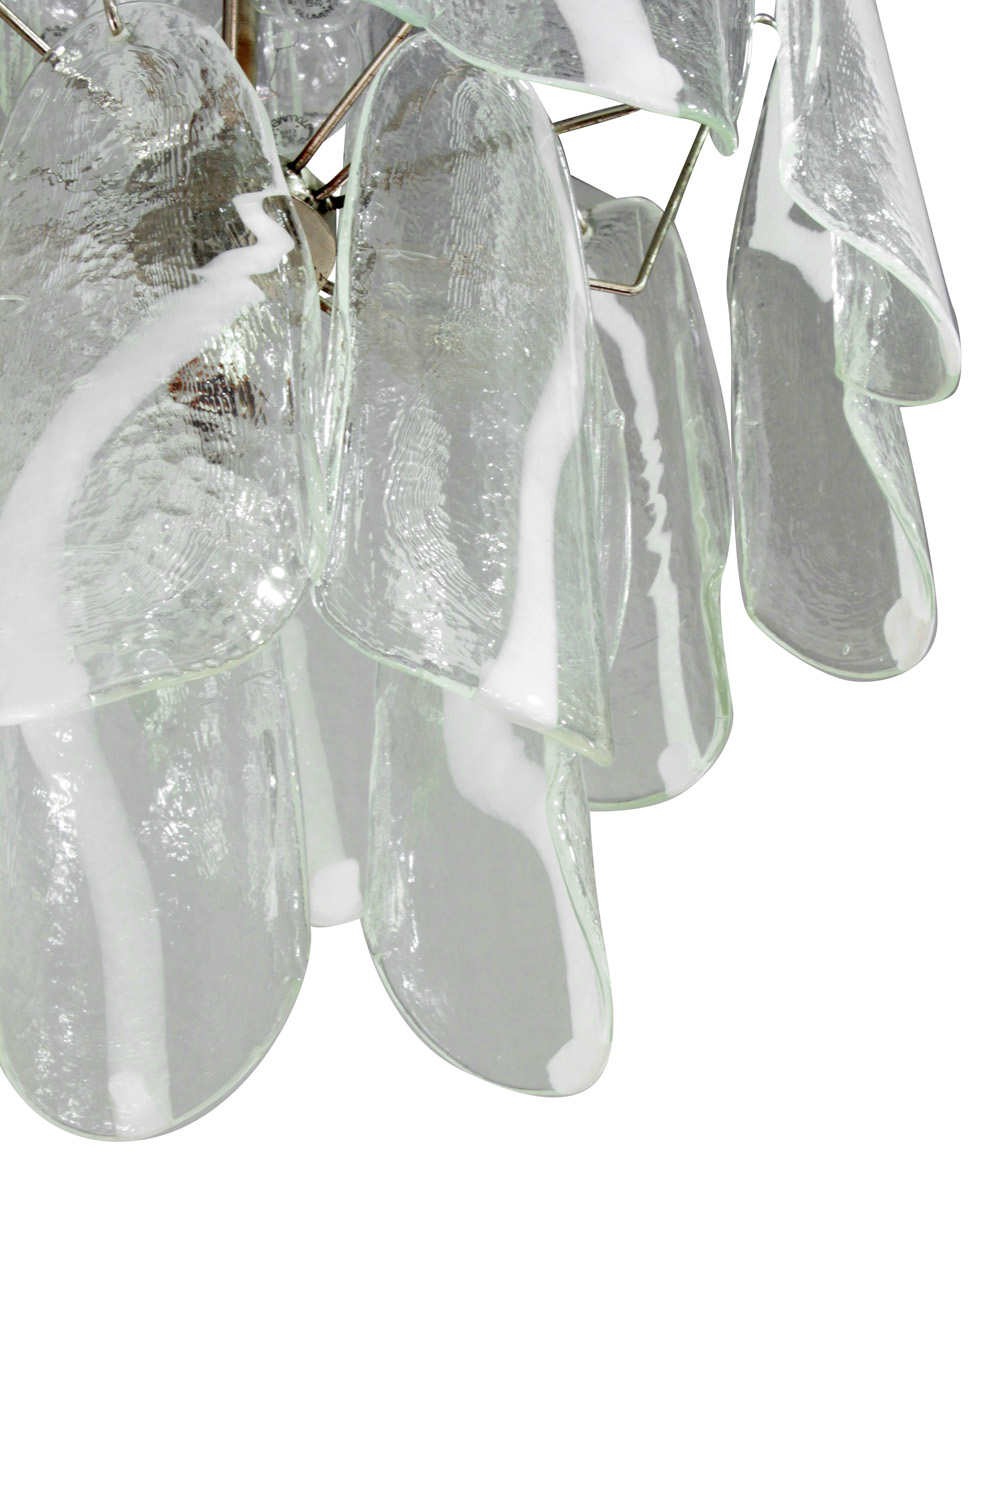 Mazzega 65 clear+white fasce chandelier196 detail2 hires.jpg